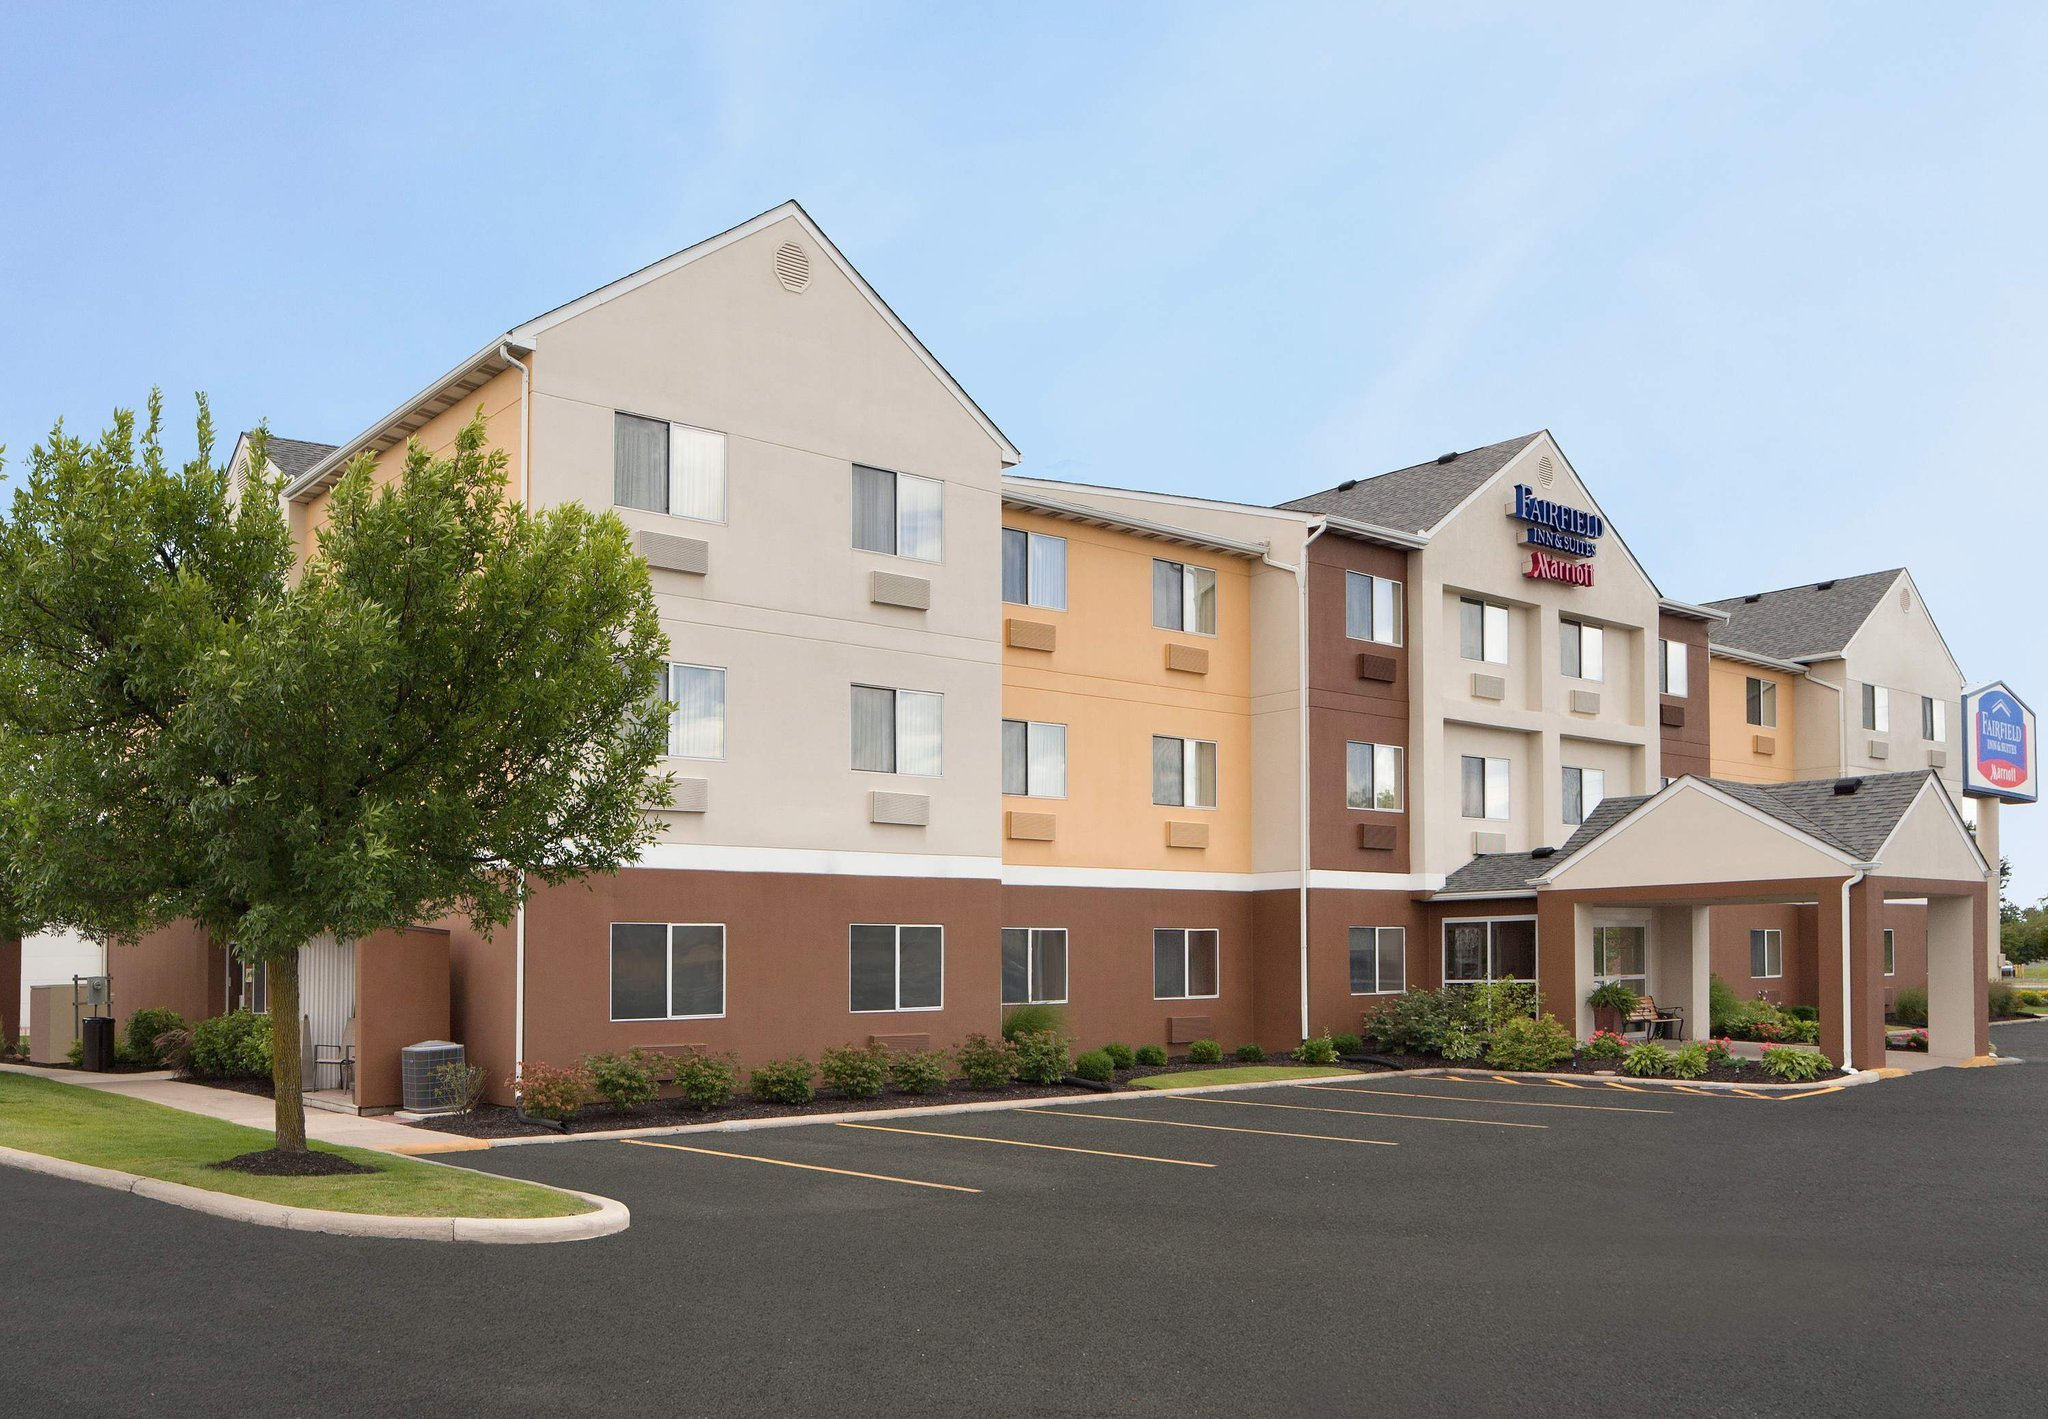 Fairfield Inn & Suites Findlay